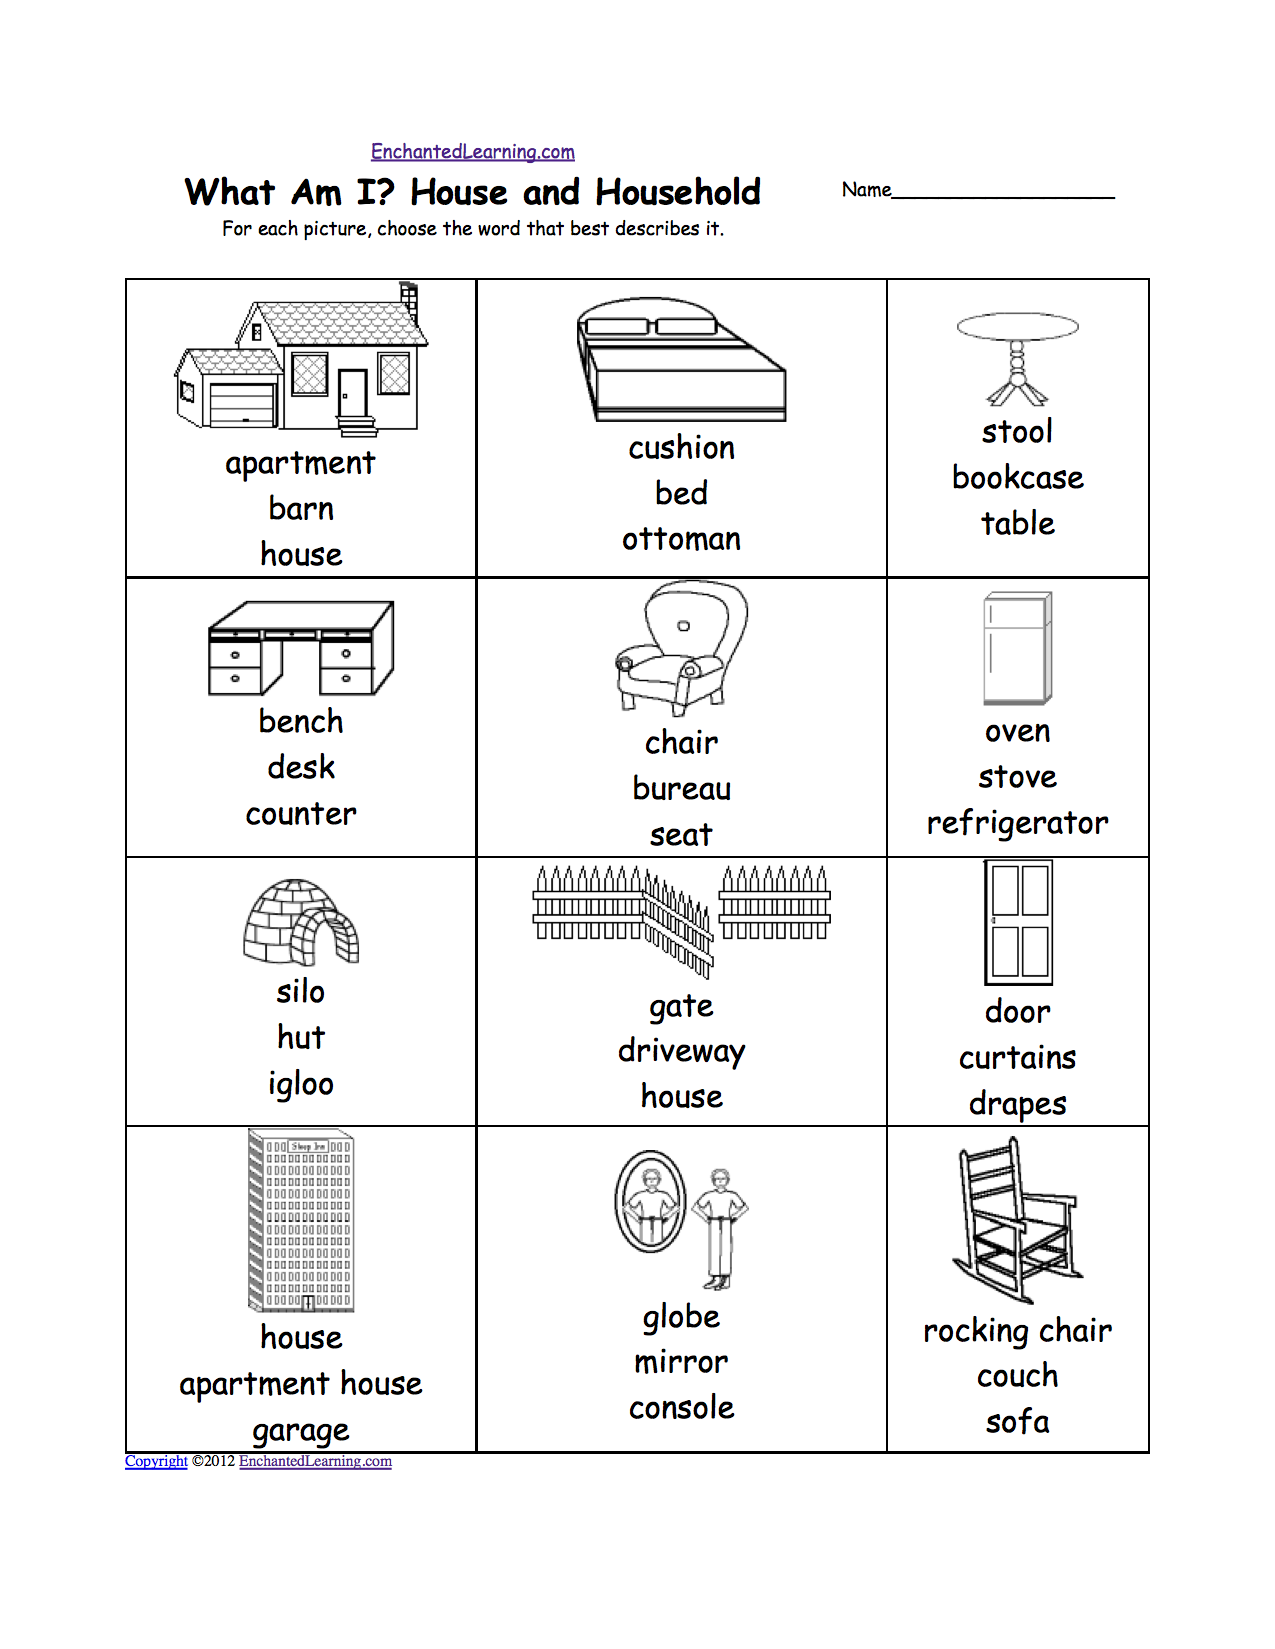 Proatmealus  Pleasing What Am I Worksheet Printouts  Enchantedlearningcom With Lovely Naming Compounds Containing Polyatomic Ions Worksheet Besides Number Line Subtraction Worksheets Ks Furthermore Th Step Inventory Worksheet With Delectable Skip Counting By  Worksheet Also Plant Cell Structure Worksheet In Addition Plus One Math Worksheets And Third Grade Common Core Worksheets As Well As Types Of Sentences Worksheets Rd Grade Additionally Second Grade Literacy Worksheets From Enchantedlearningcom With Proatmealus  Lovely What Am I Worksheet Printouts  Enchantedlearningcom With Delectable Naming Compounds Containing Polyatomic Ions Worksheet Besides Number Line Subtraction Worksheets Ks Furthermore Th Step Inventory Worksheet And Pleasing Skip Counting By  Worksheet Also Plant Cell Structure Worksheet In Addition Plus One Math Worksheets From Enchantedlearningcom